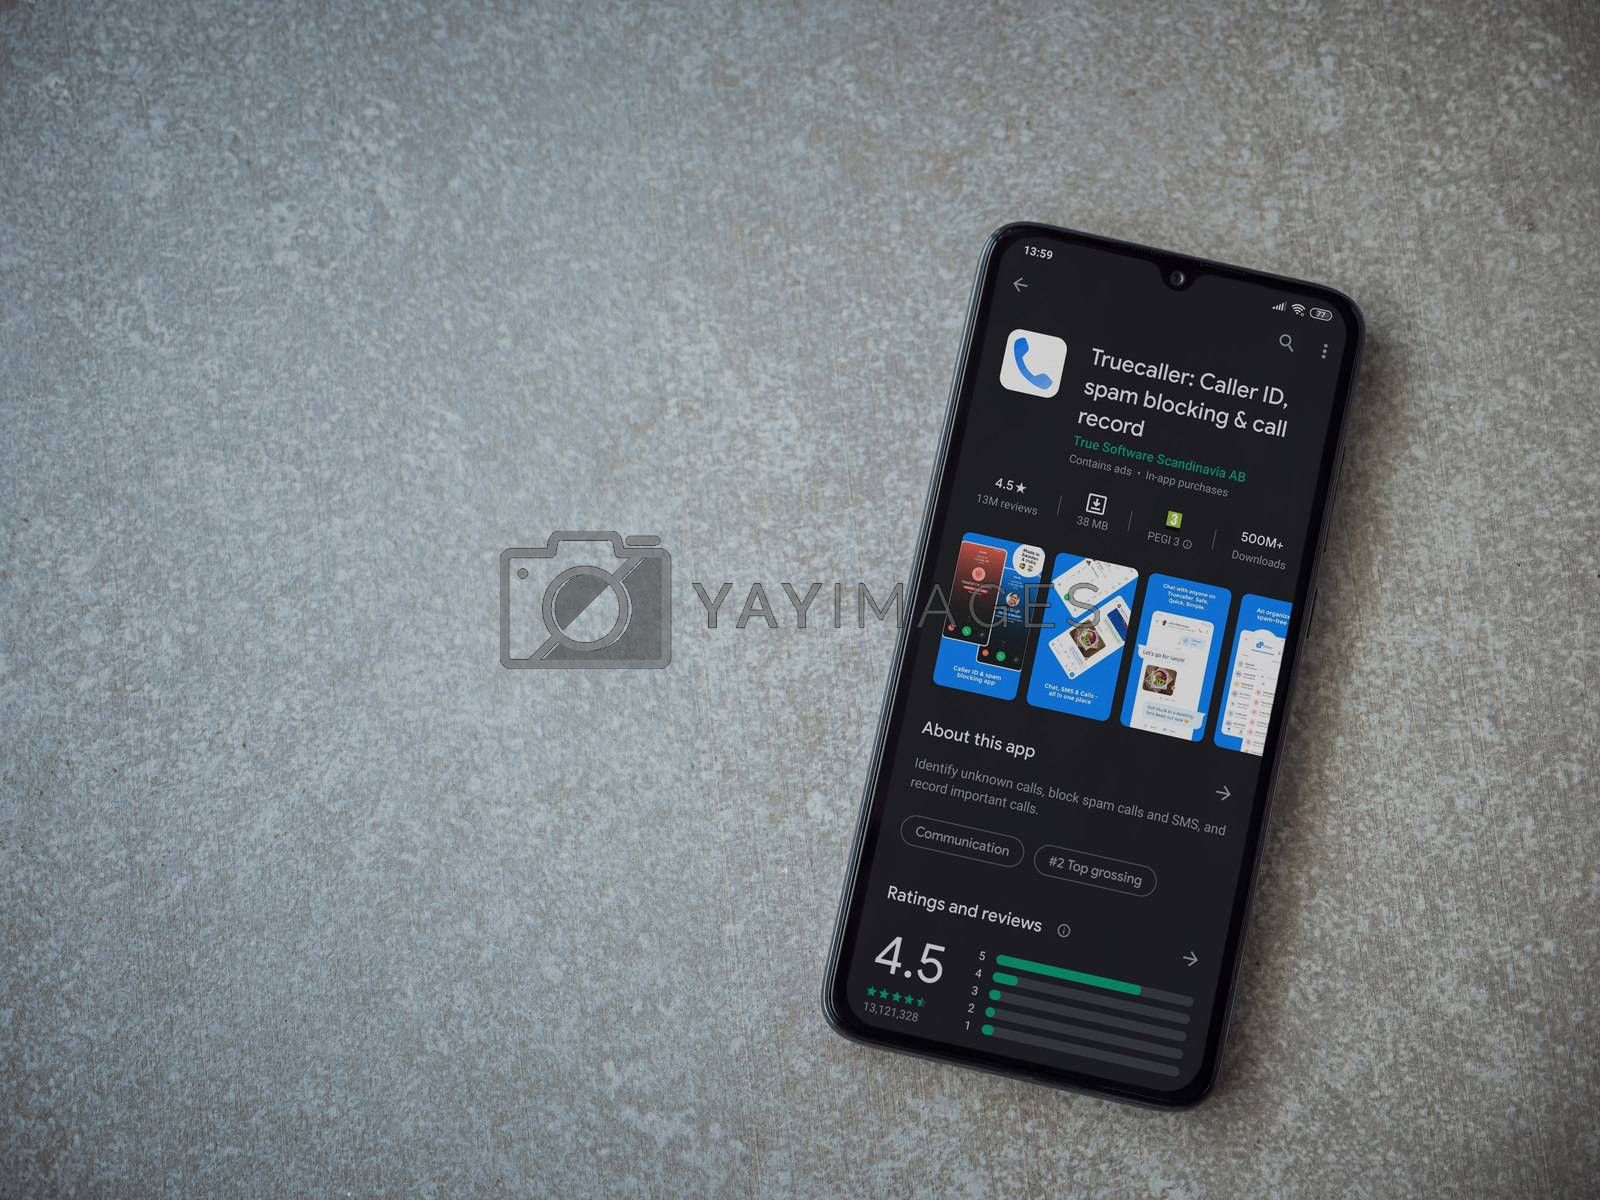 Lod, Israel - July 8, 2020: Truecaller app play store page on the display of a black mobile smartphone on ceramic stone background. Top view flat lay with copy space.